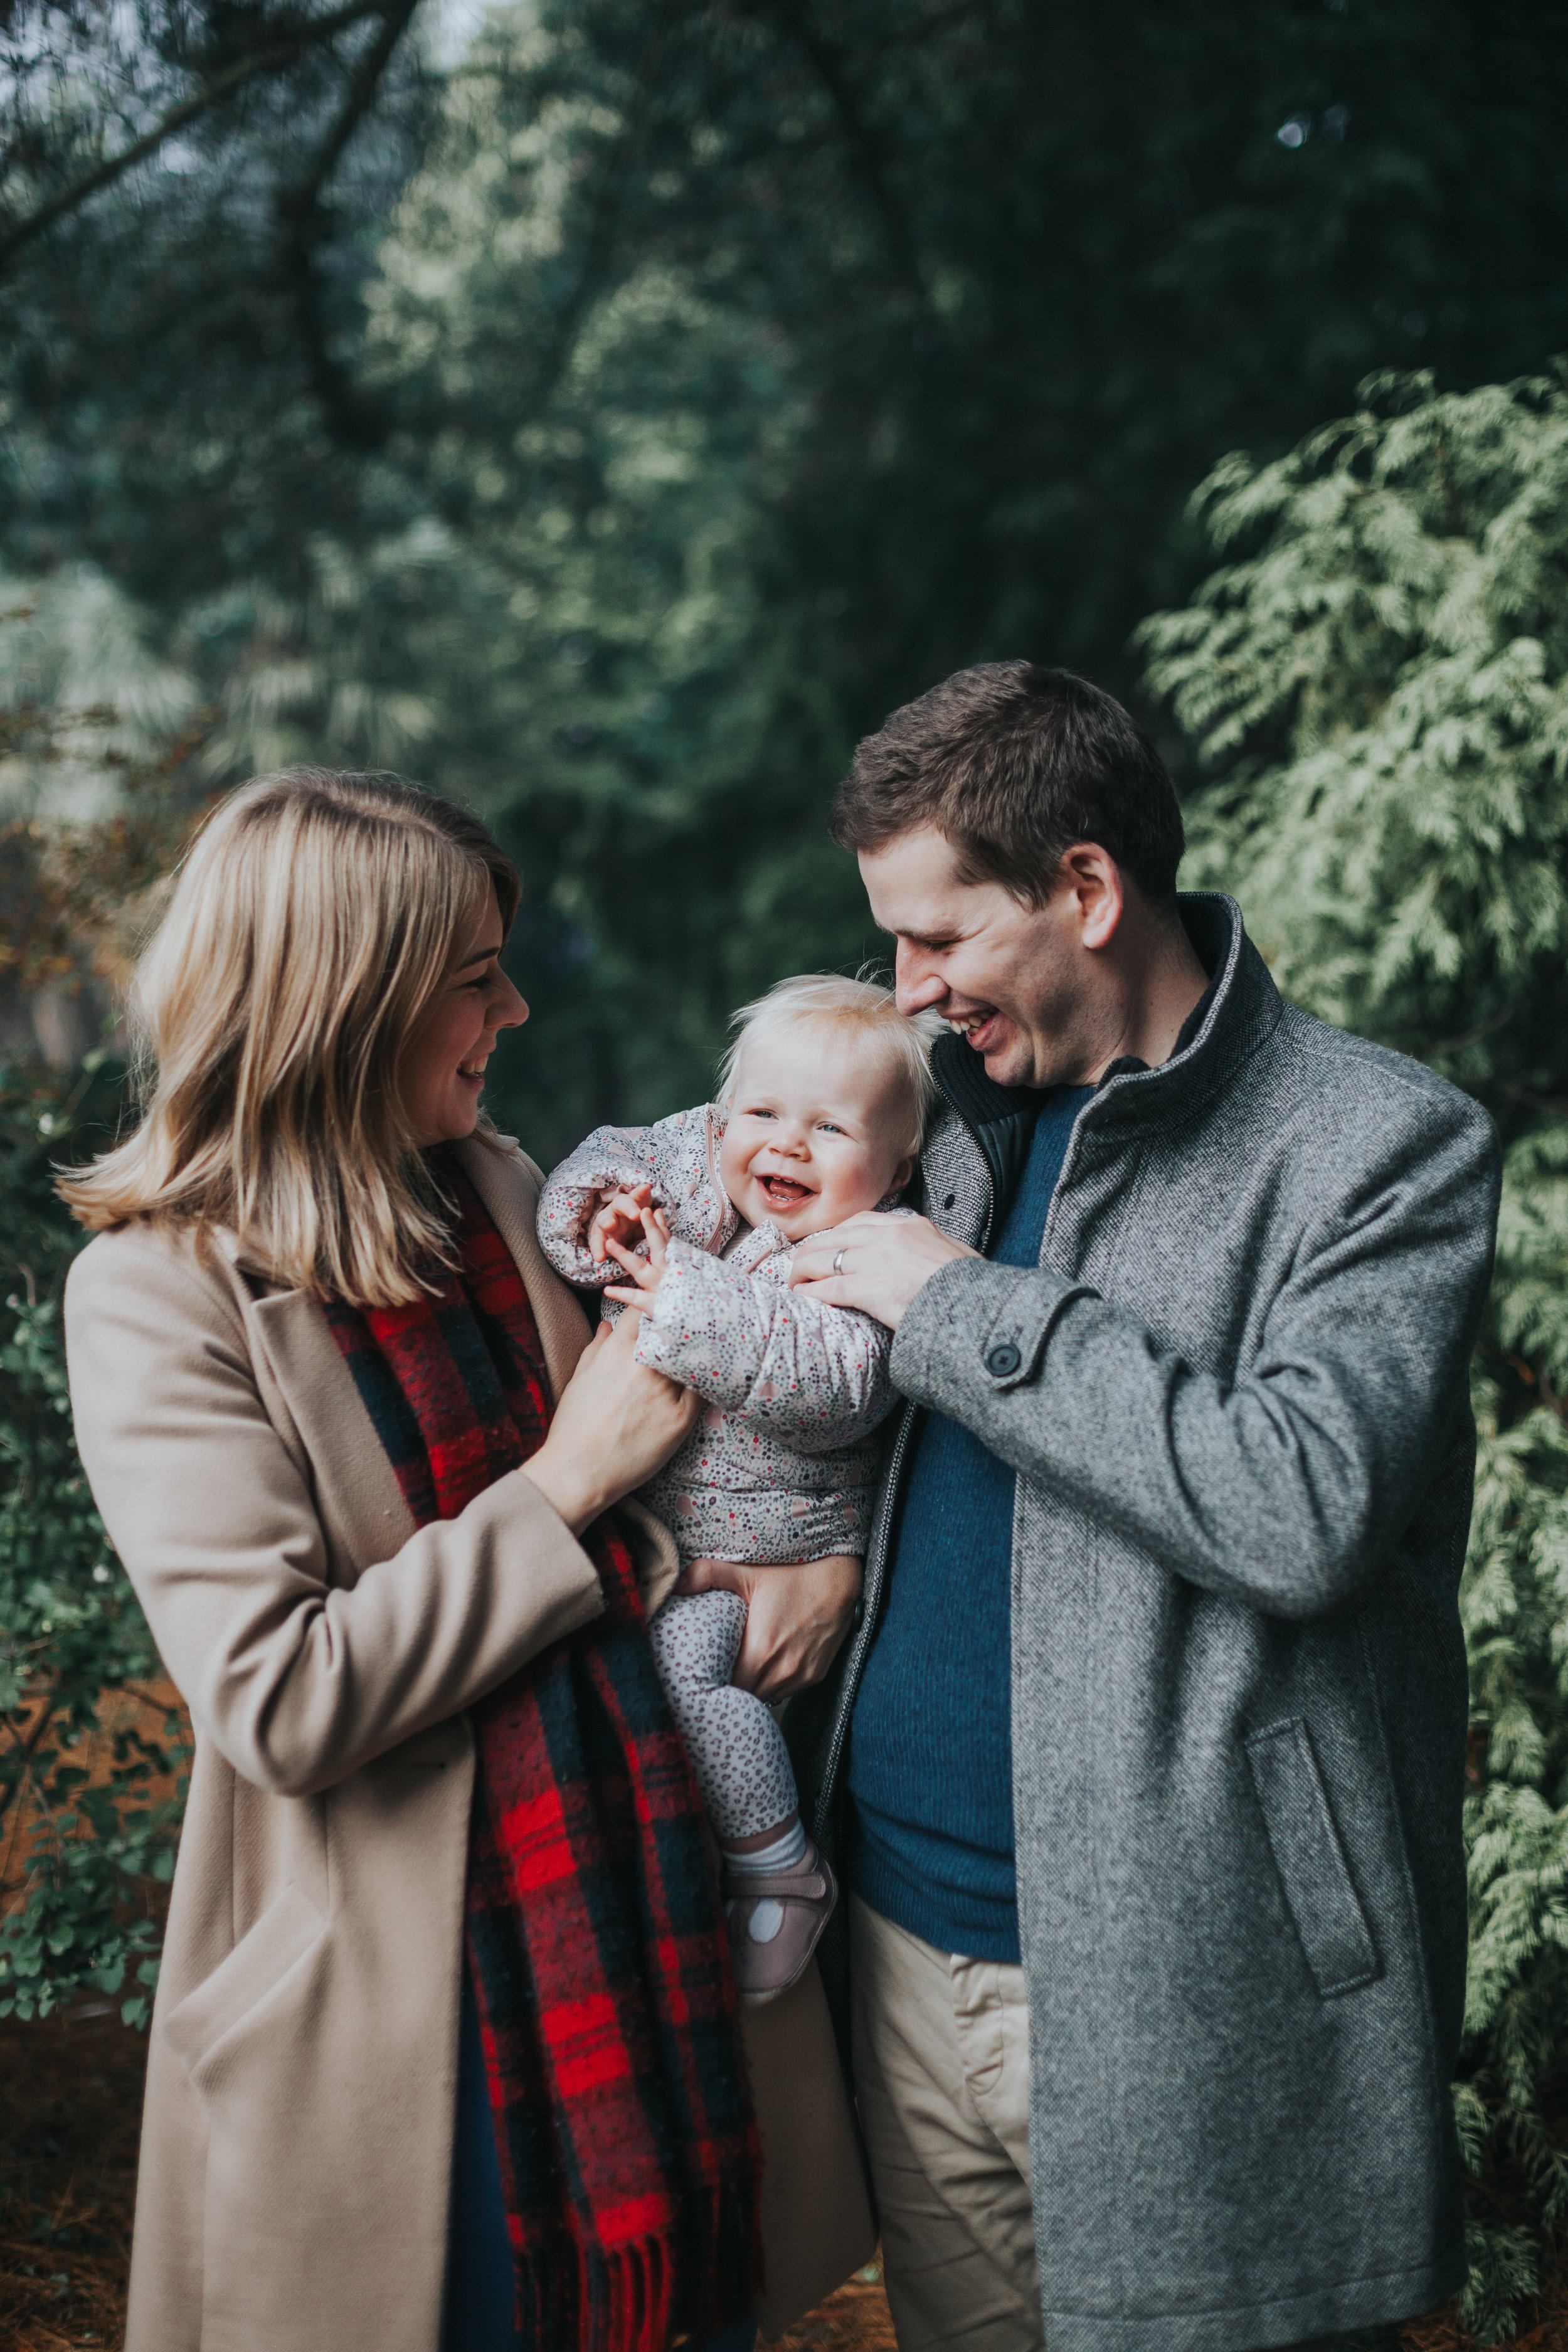 Evie giggling in family photo.